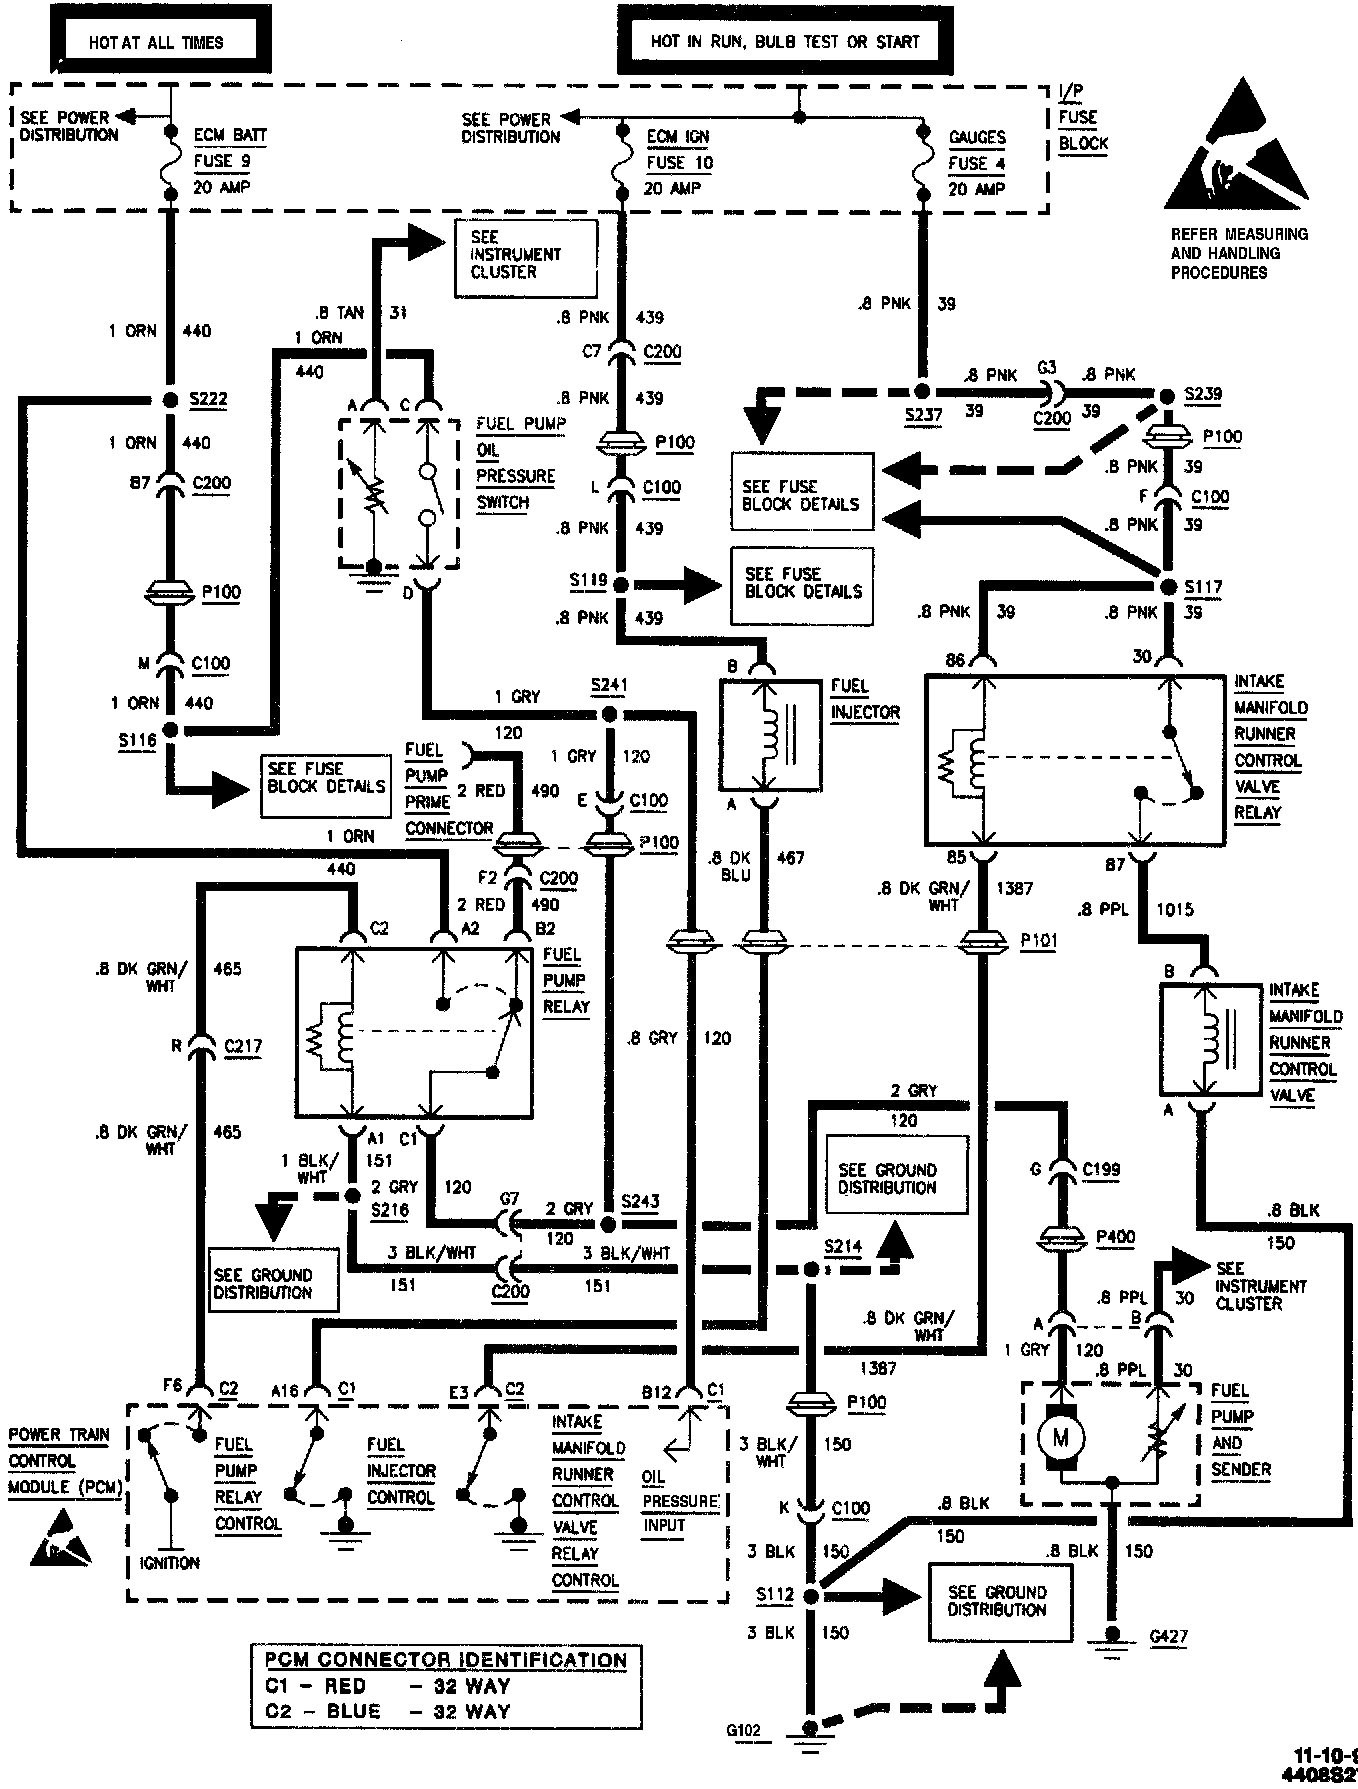 DIAGRAM] 2008 Chevy Tail Light Wiring Diagram FULL Version HD Quality Wiring  Diagram - TOGGLEDWIRING.CONTOROCK.ITCONTO ROCK